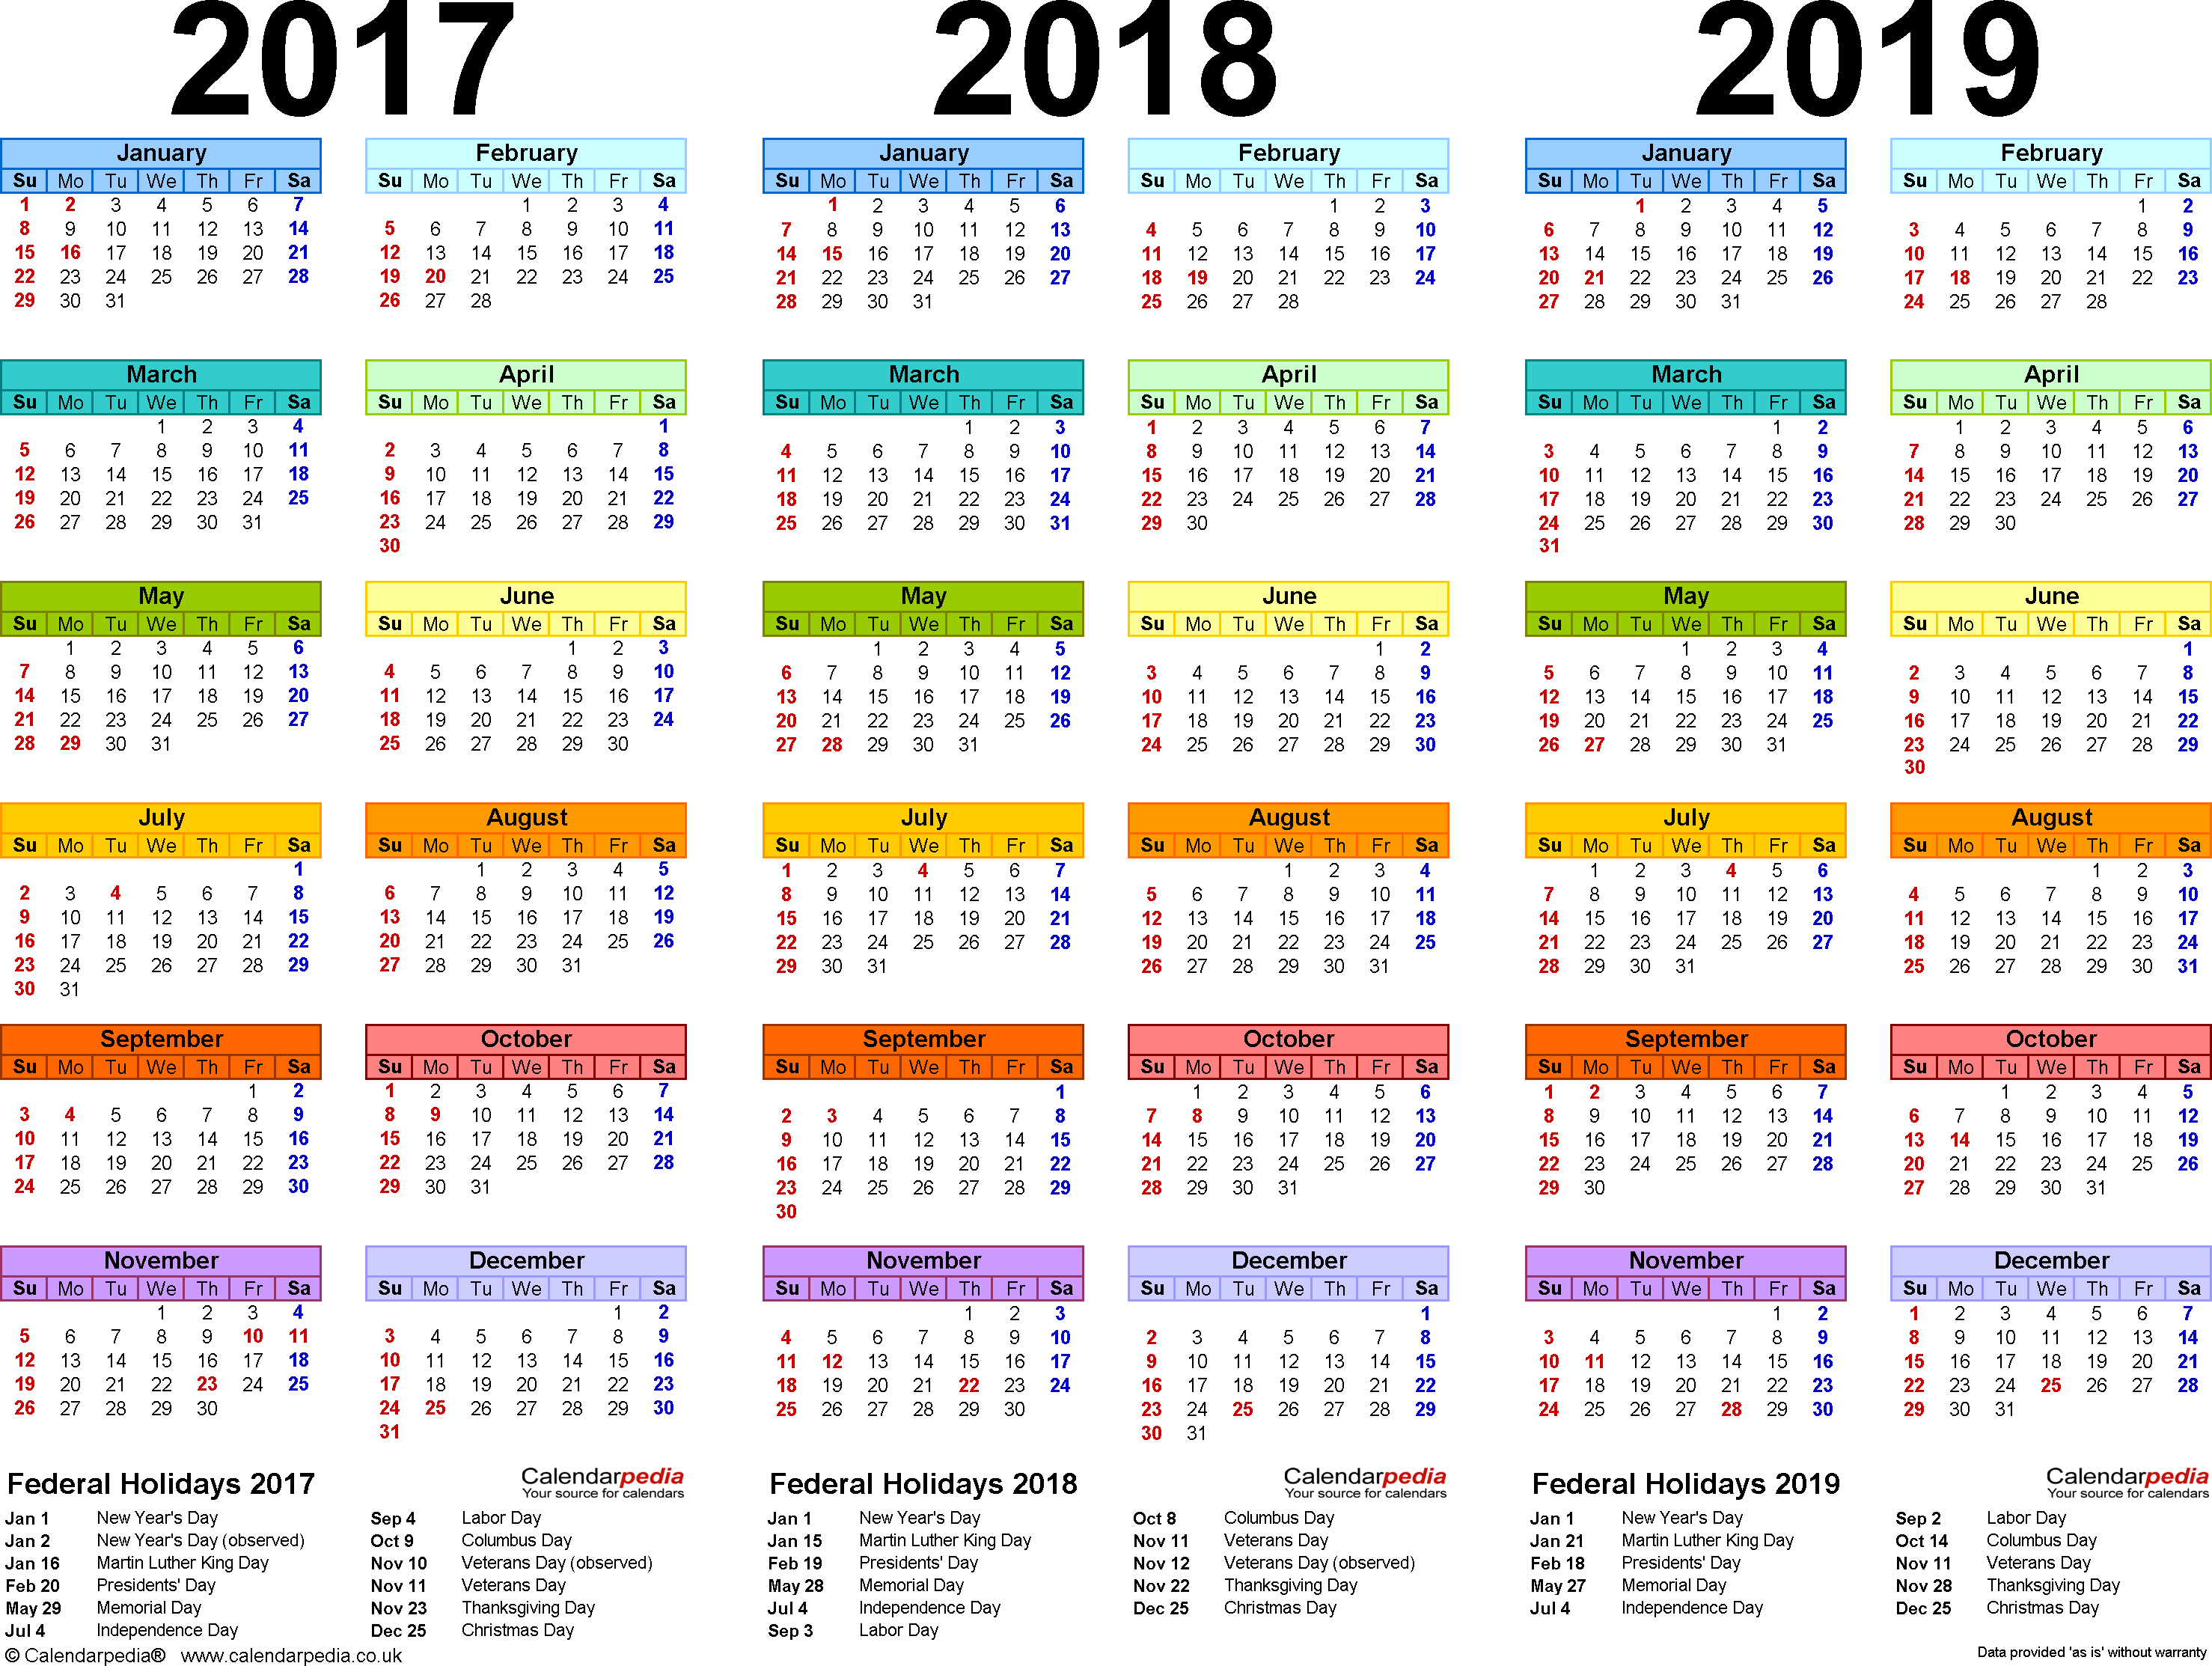 template 1 pdf template for three year calendar 201720182019 landscape orientation 1 page in color